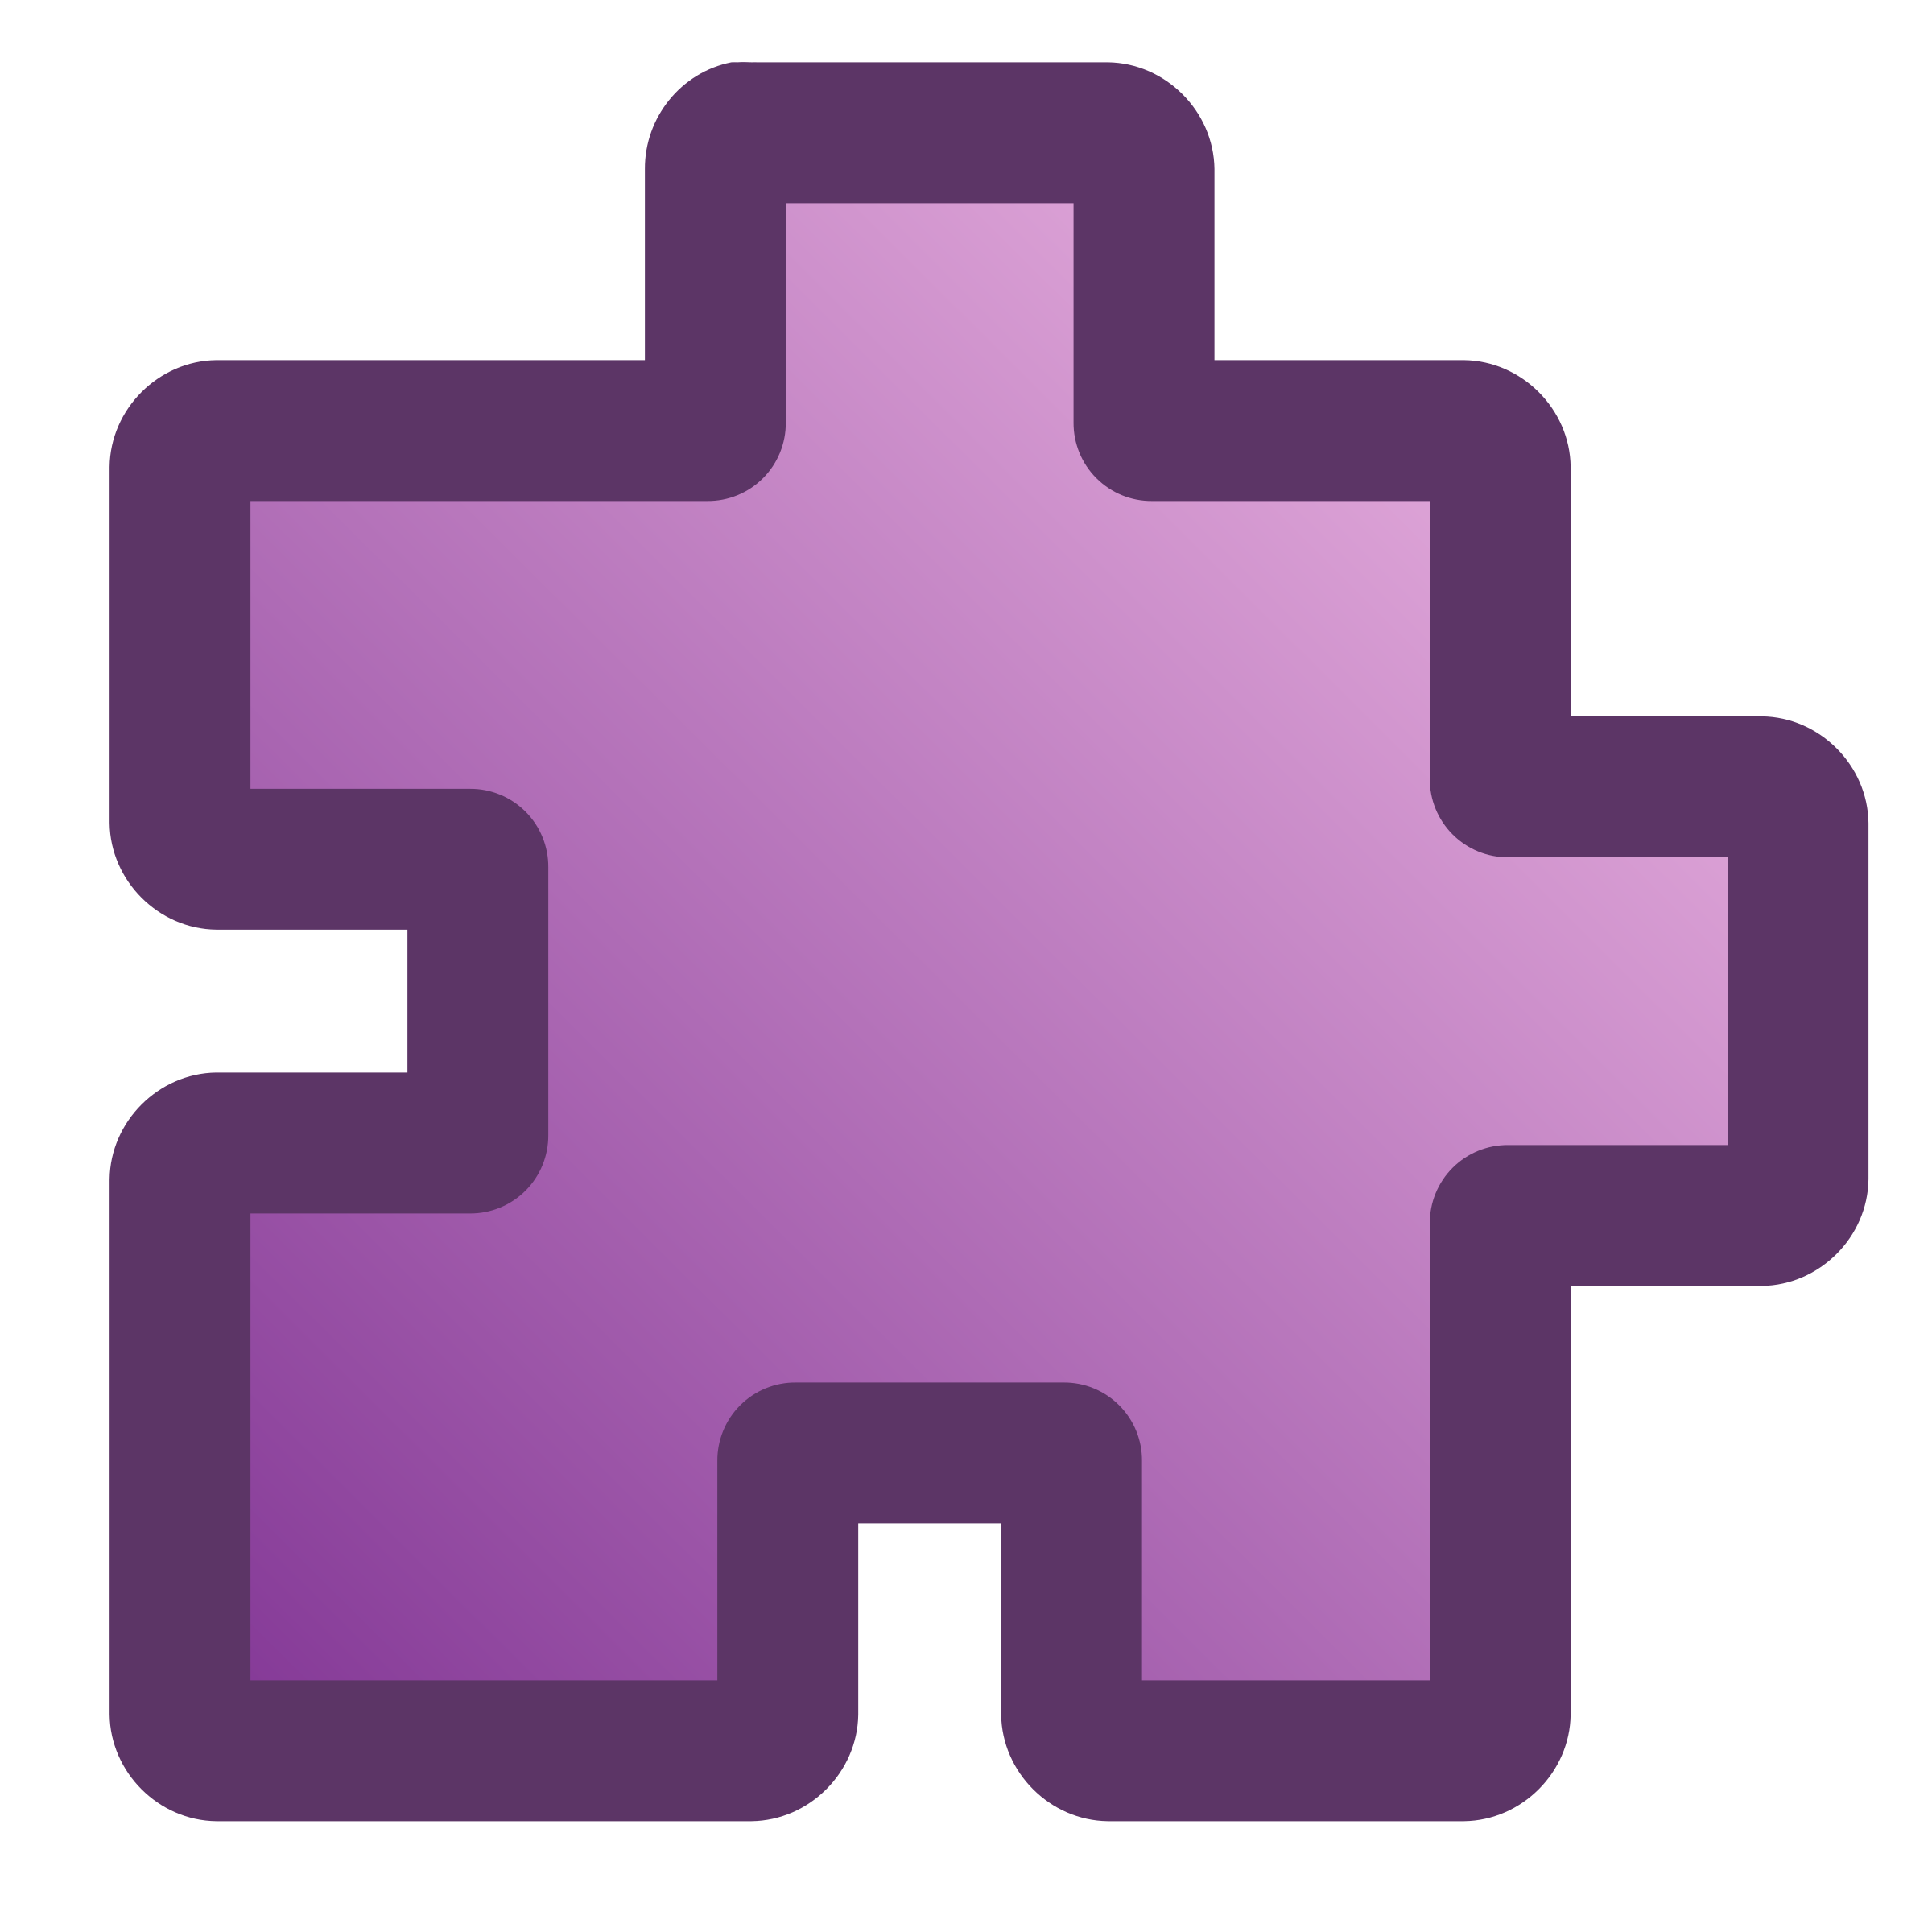 icon-puzzle-purple by jean_victor_balin